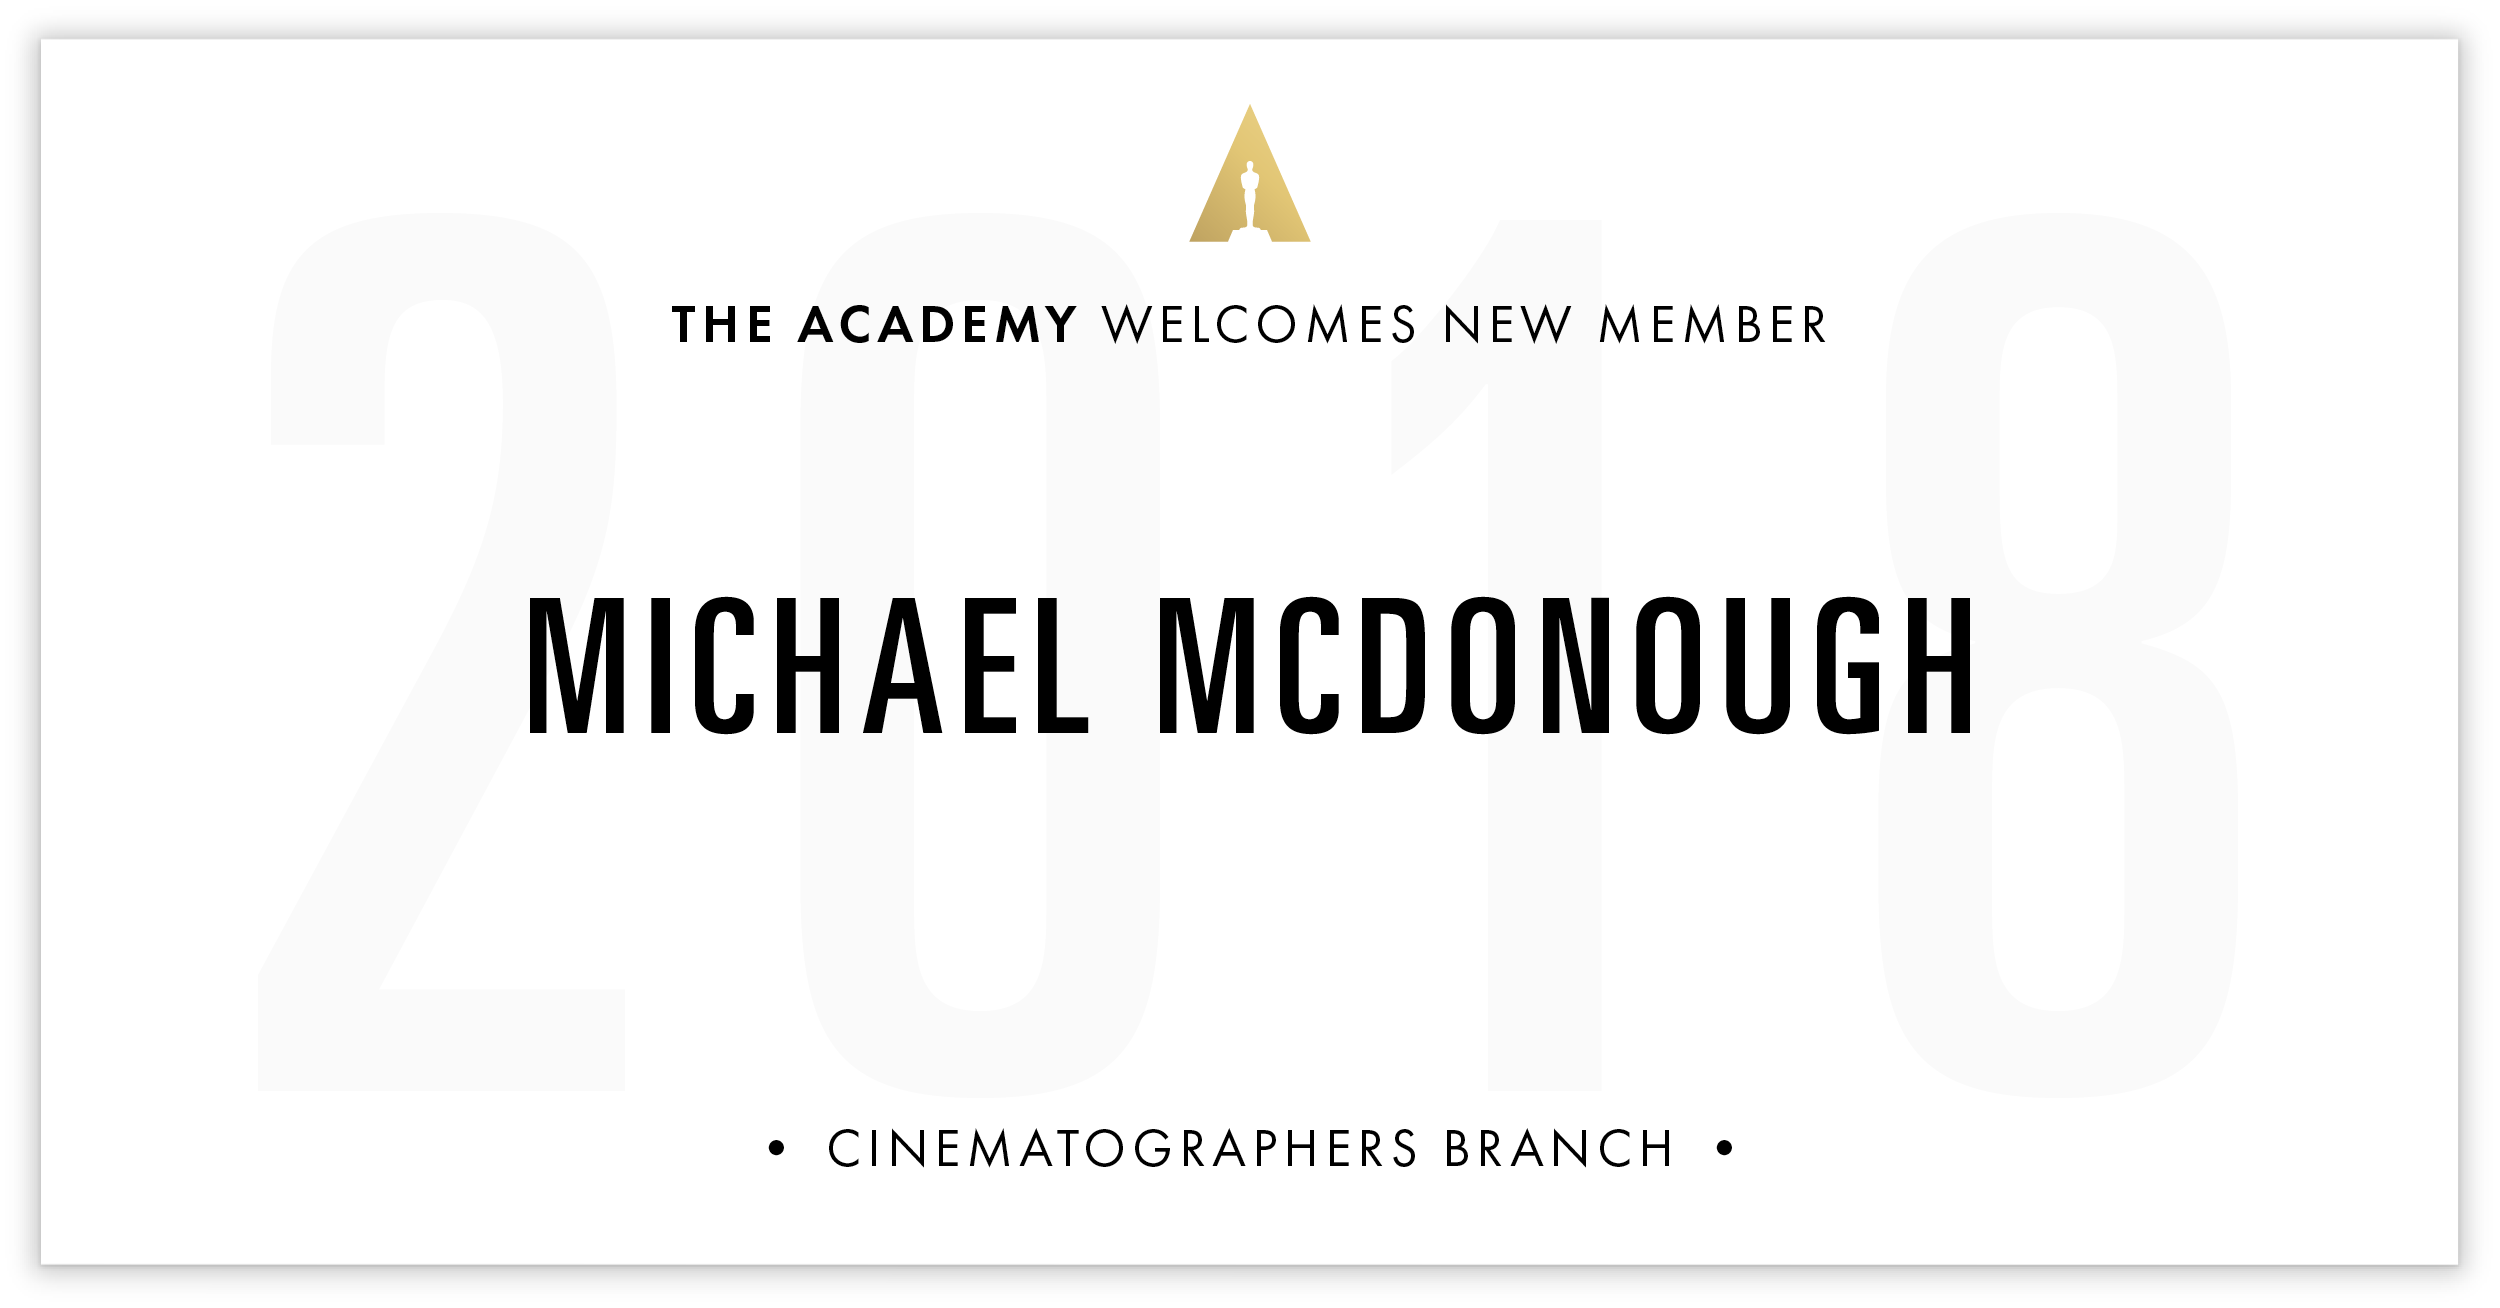 Michael McDonough is invited!